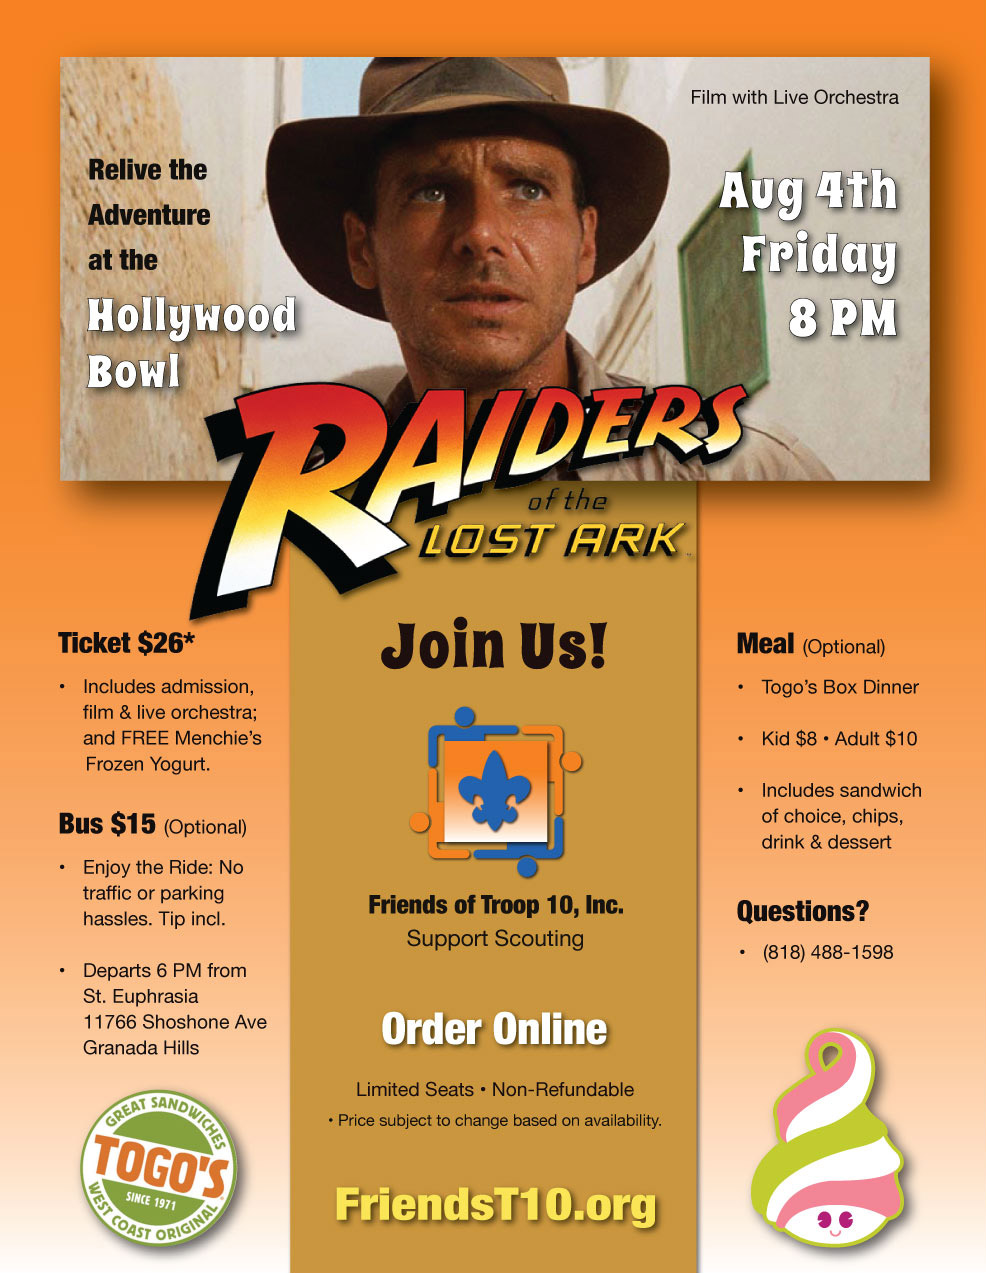 HBowl-Indiana-Jones-Flyer.jpg